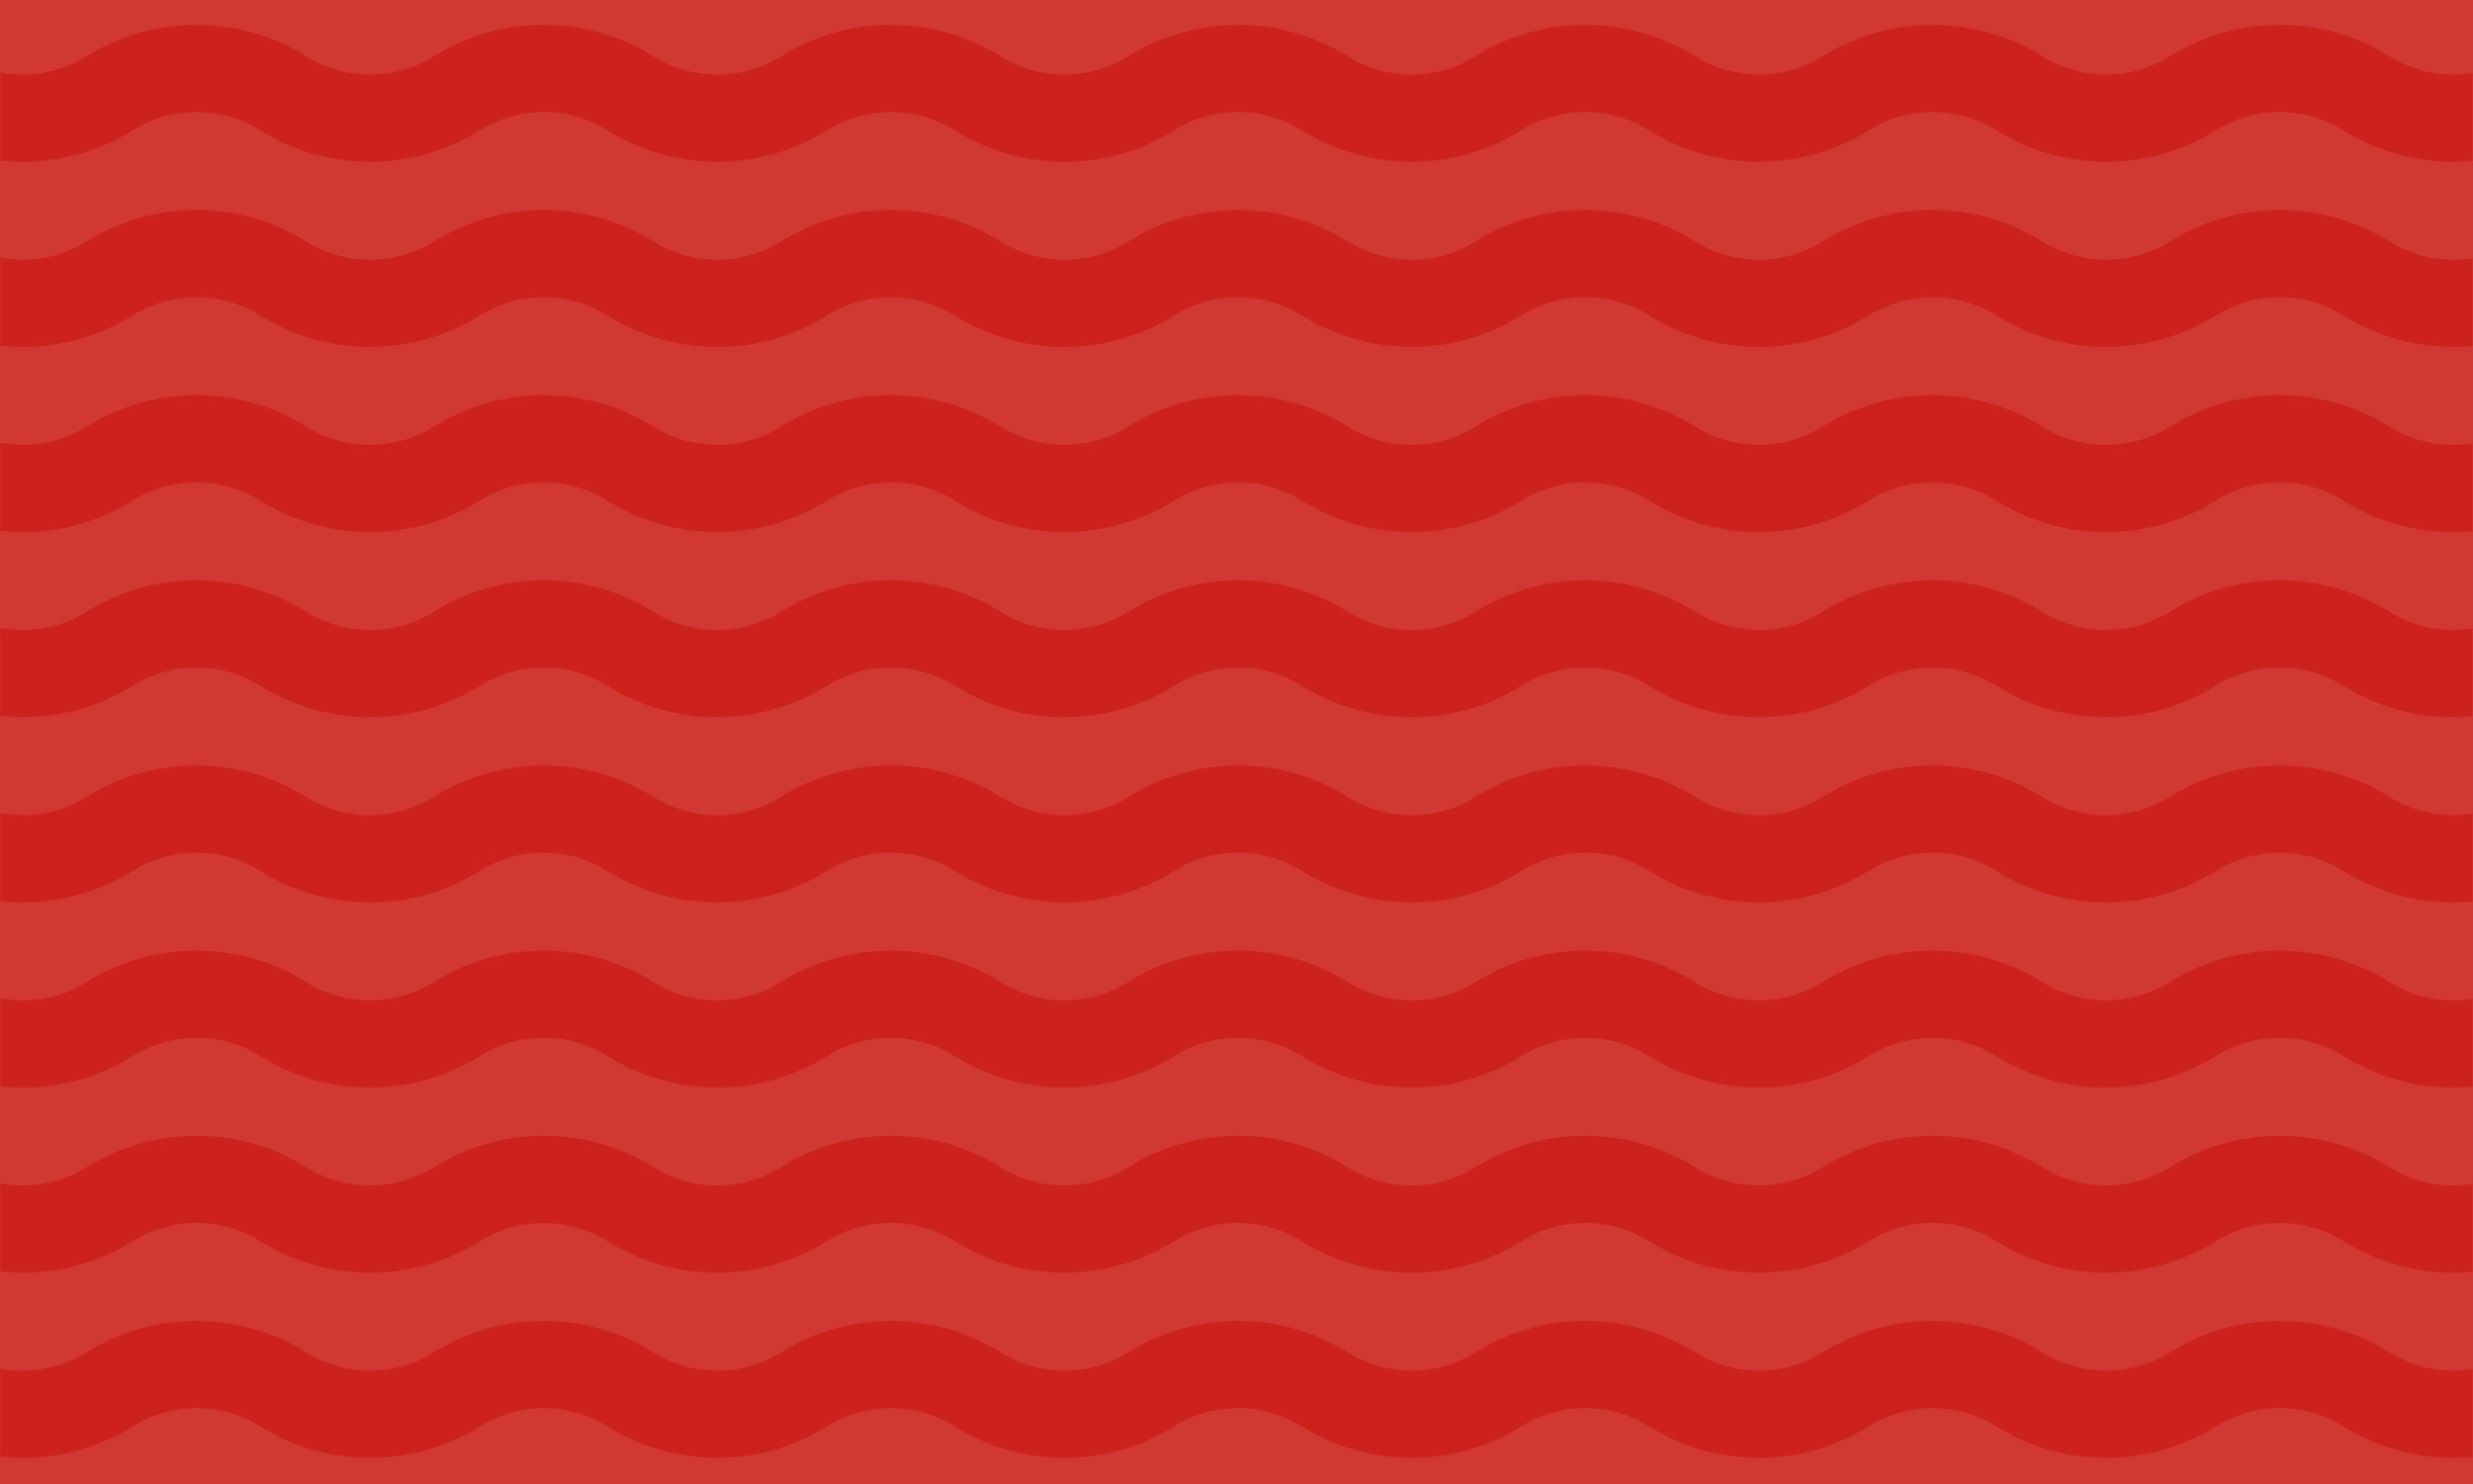 Red waves pattern